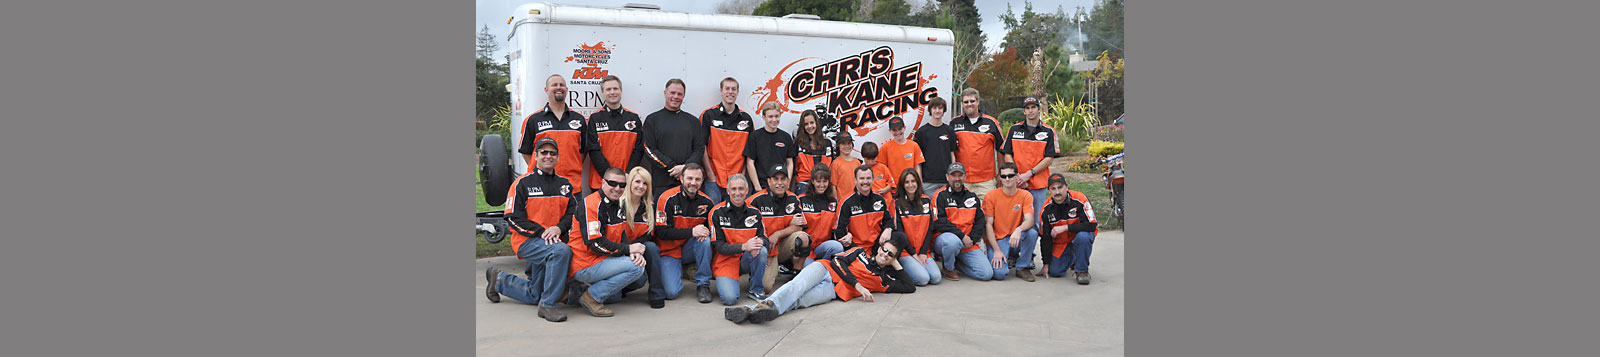 Chris Kane Racing team photo